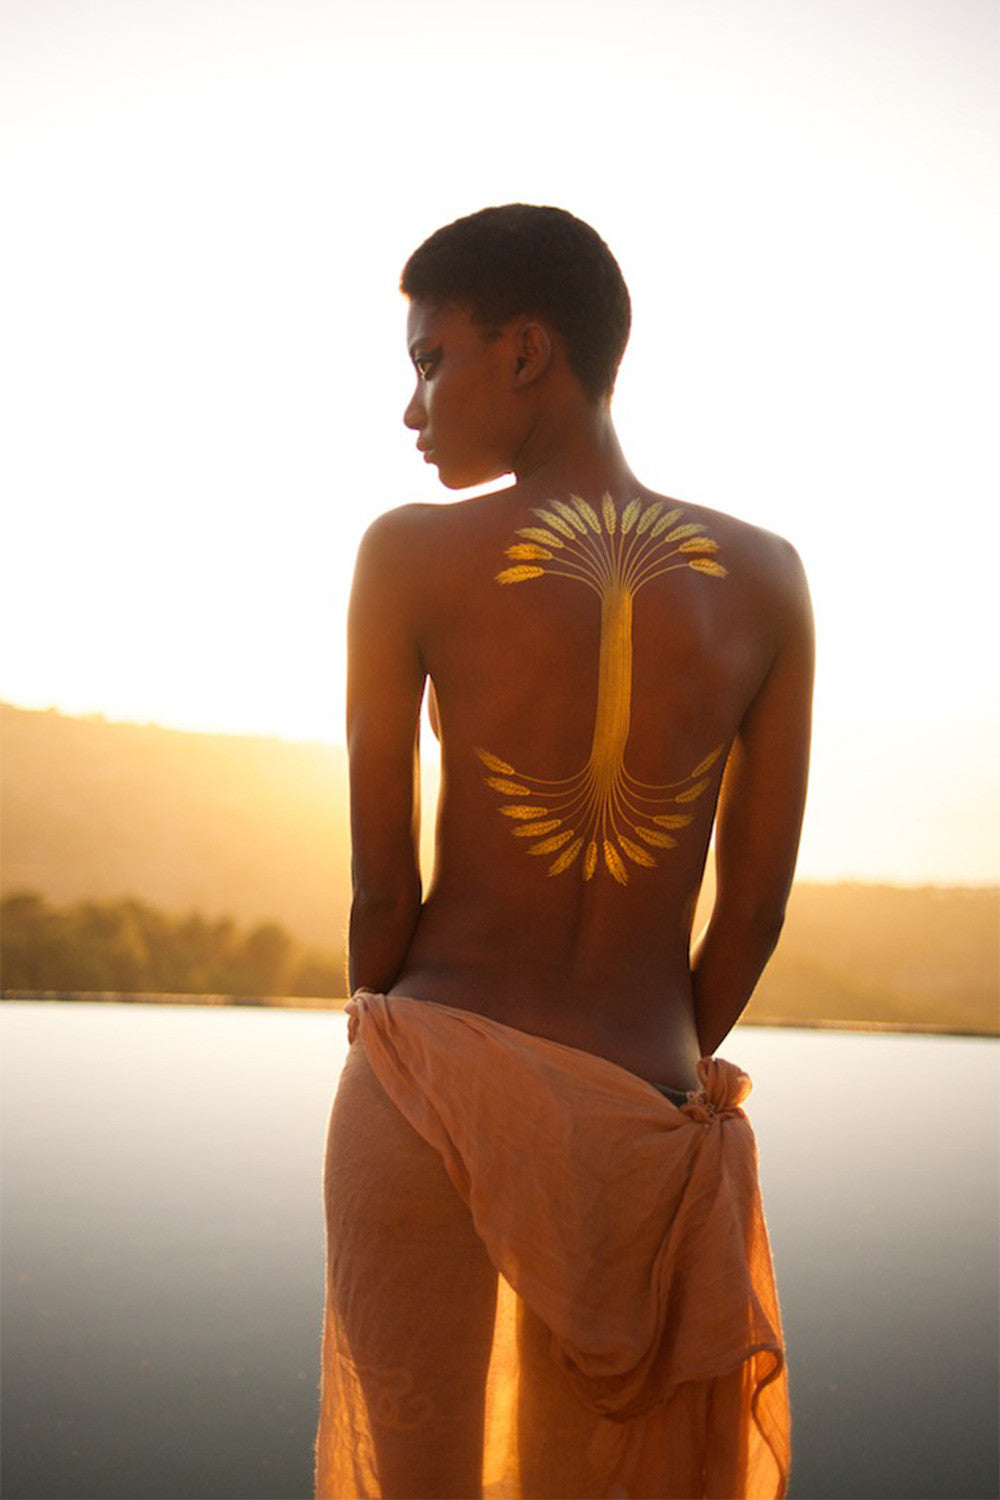 Wheat flash gold tattoo on back in sunset by Tille del Negro